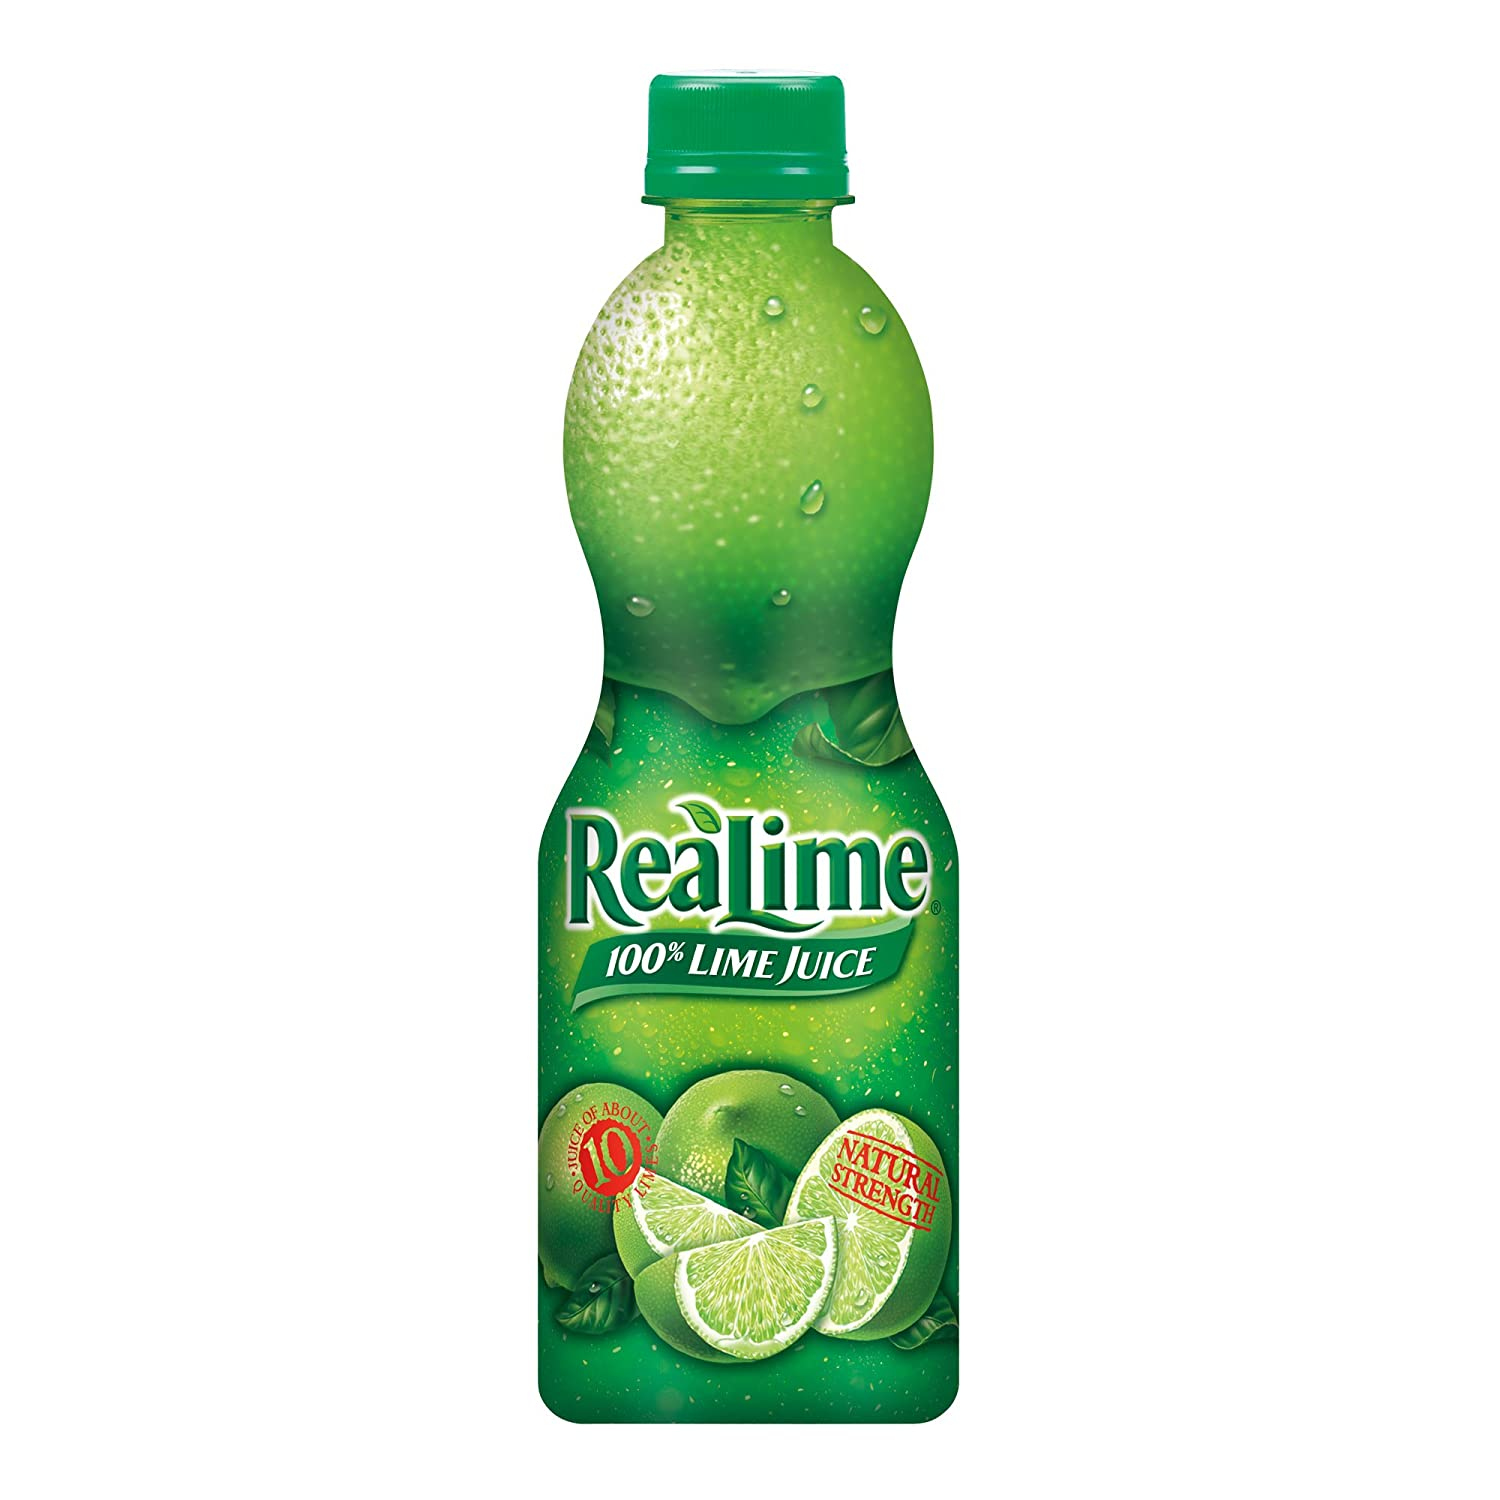 Realime Lime Juice 15-Ounce of 6 Pack Free shipping Long Beach Mall on posting reviews